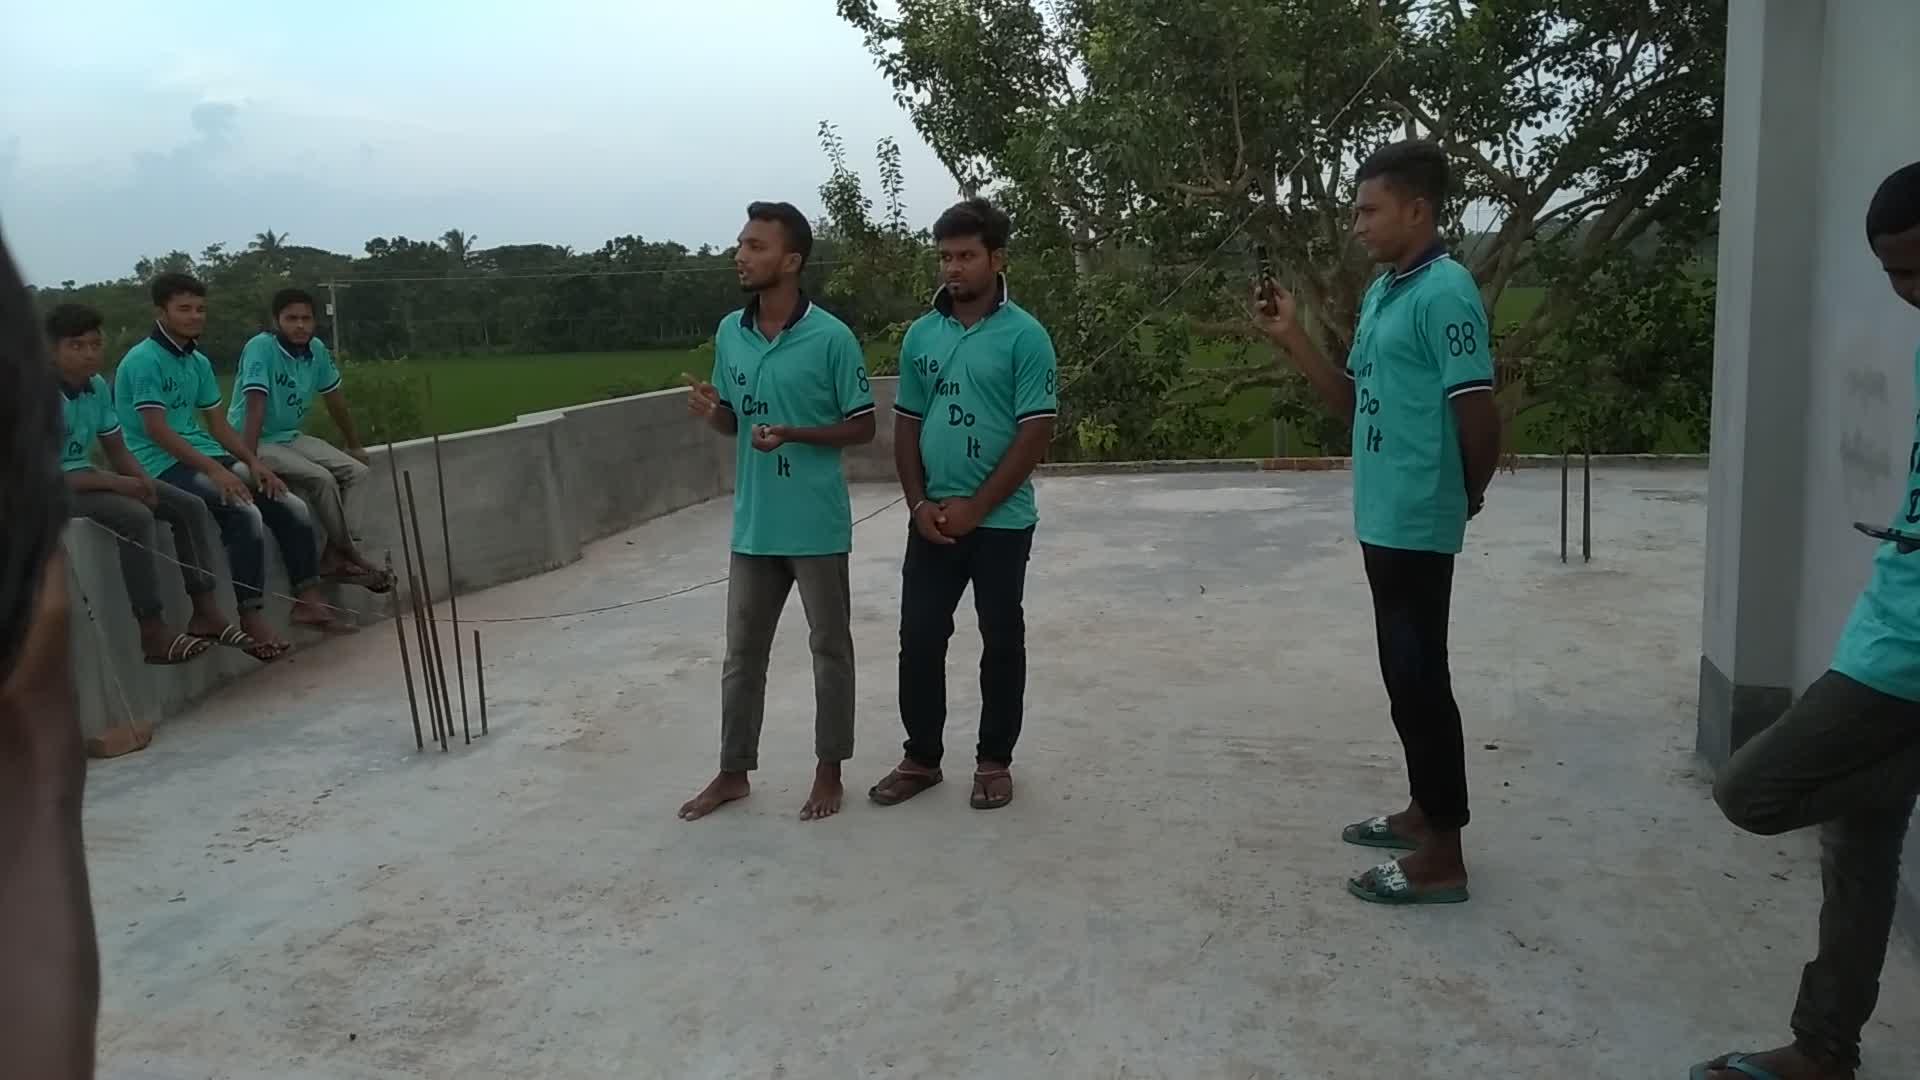 This video shows Md. Raihan Hossain release admin talking about relief.